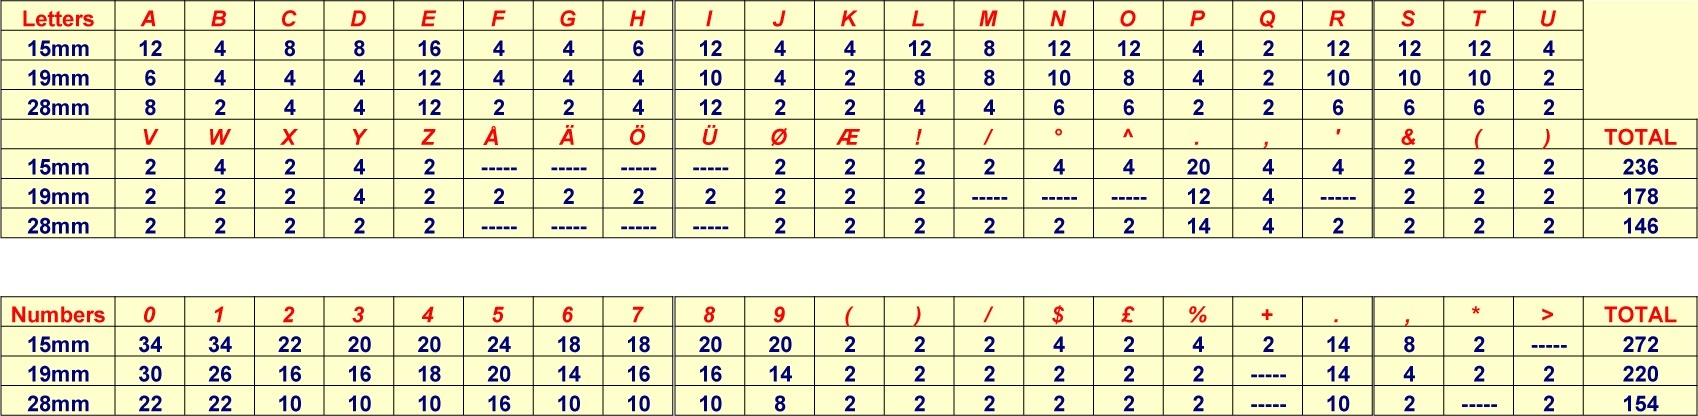 Letters & Numbers Spreadsheet